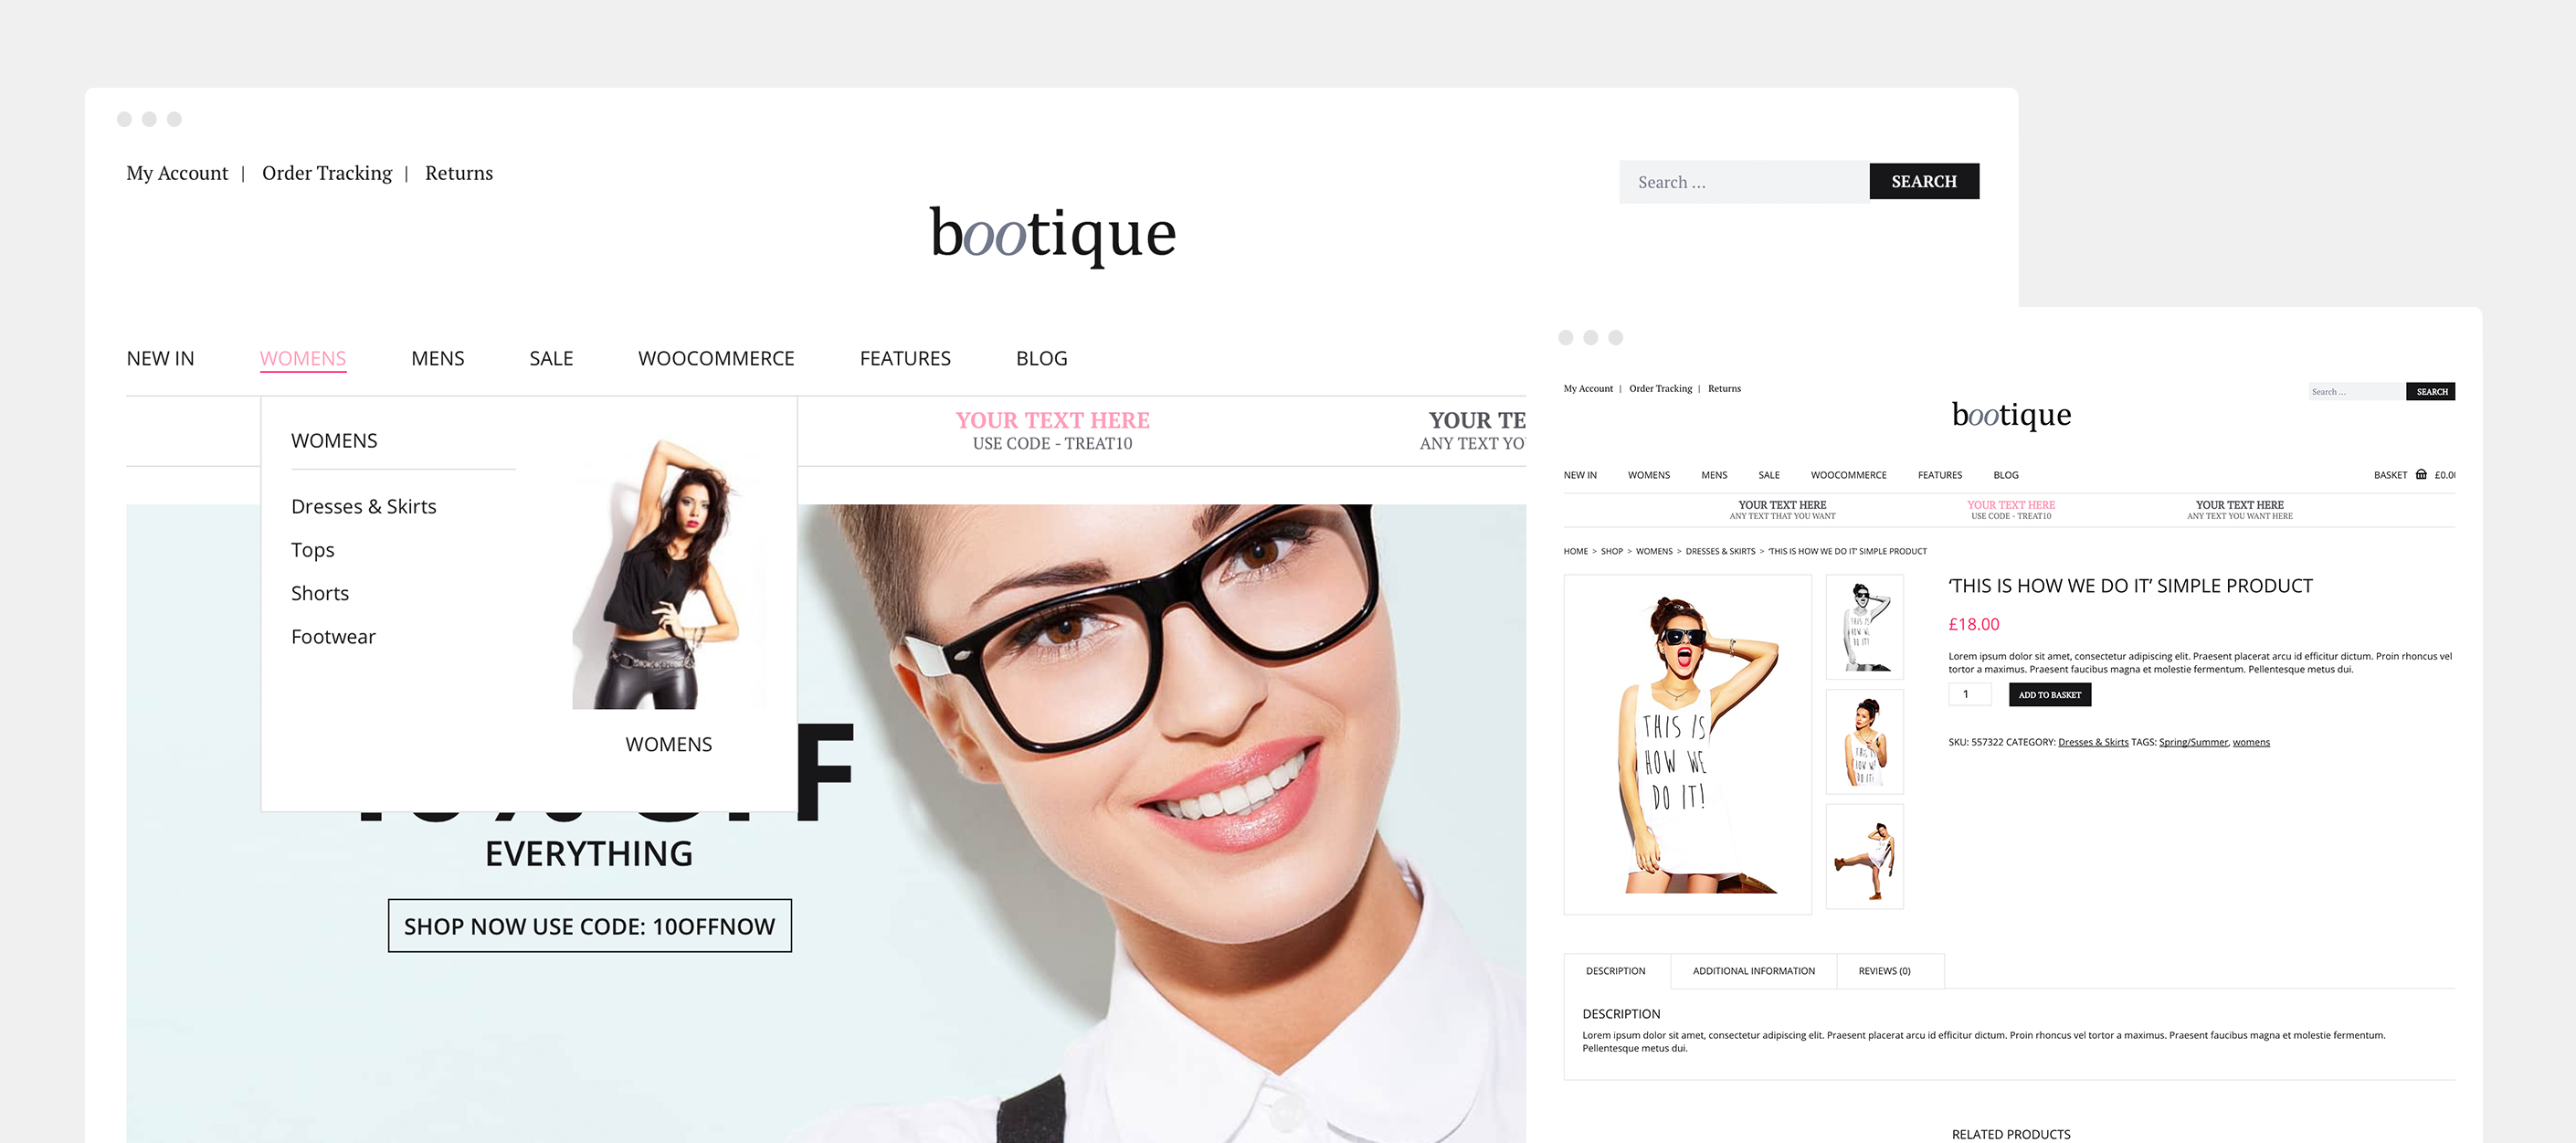 Bootique Fashion Ecommerce Website by Bamboo Manchester